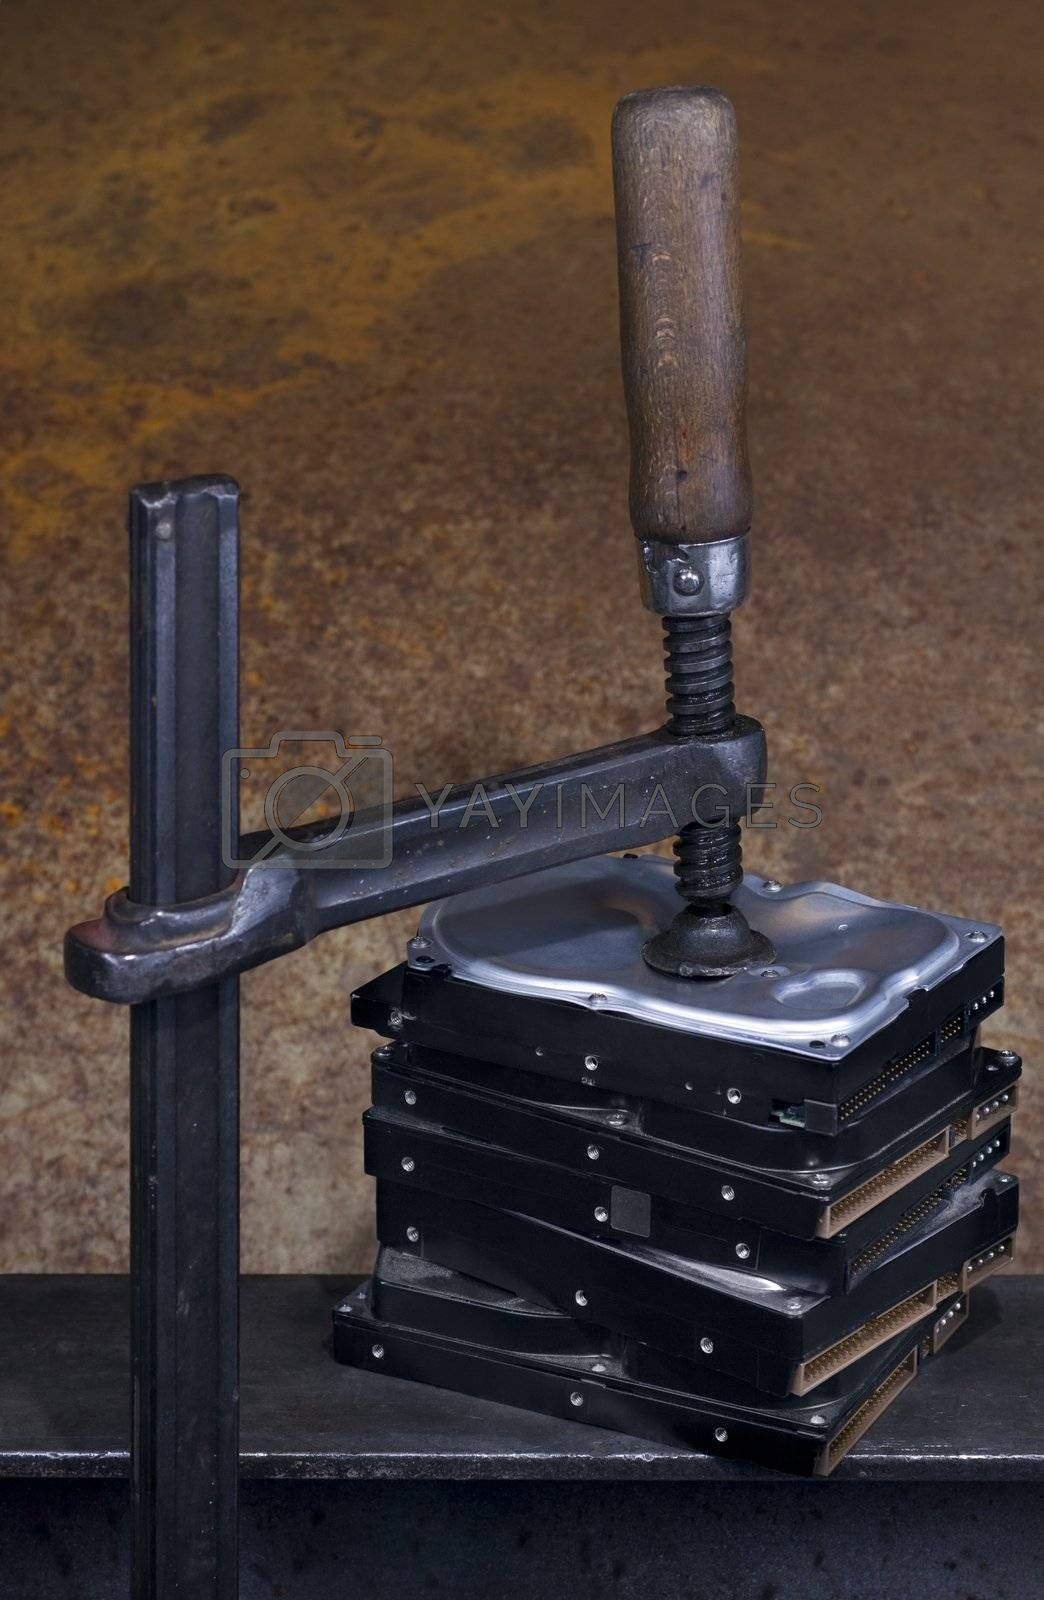 clamp pressing on stack of hard drives. The top drive is deformed